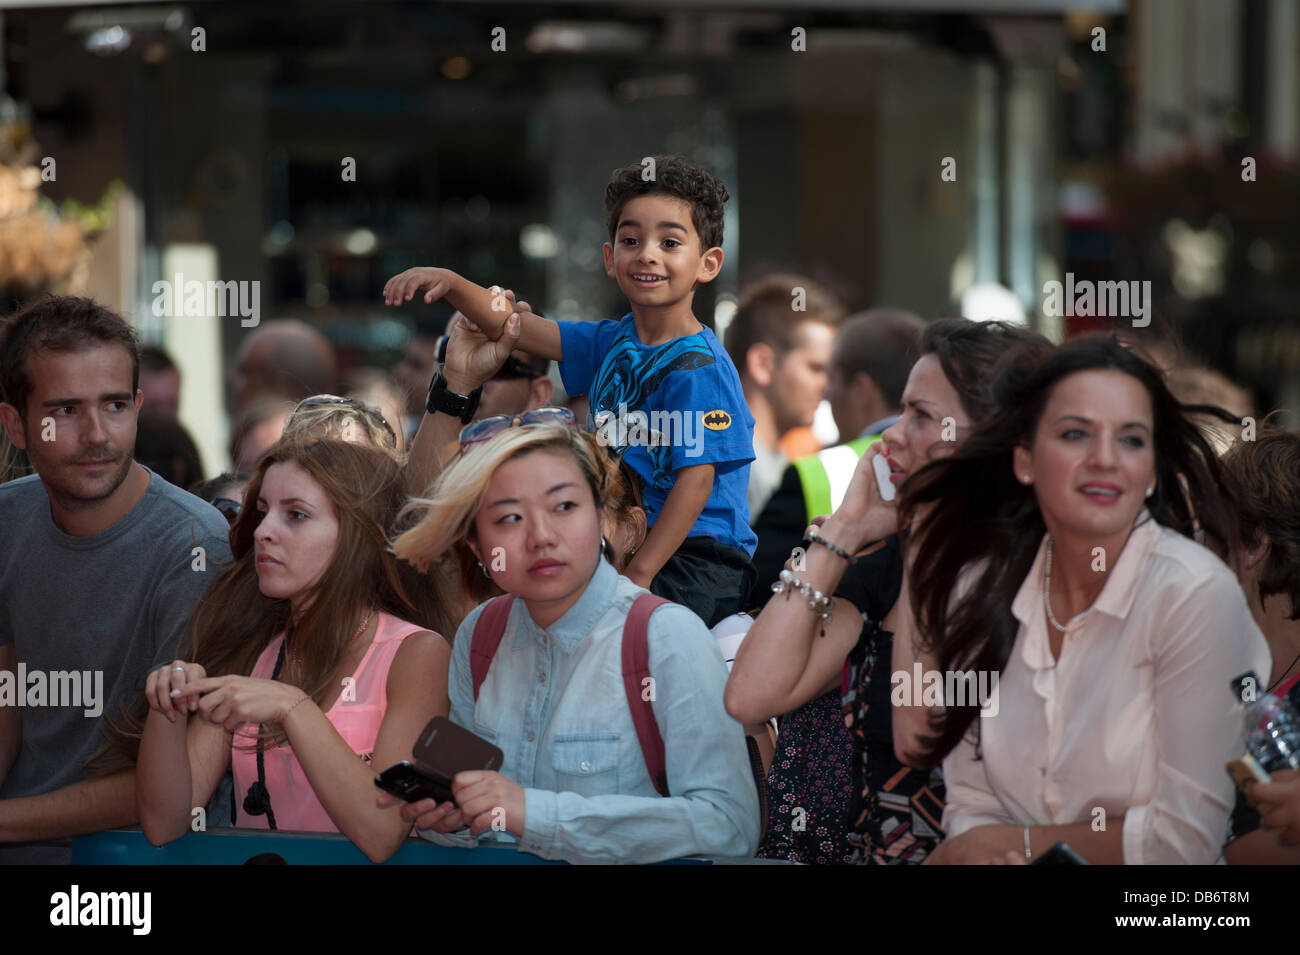 Leicester Square, London, UK. 24th July, 2013. Fans wait for Alan Partridge, aka Steve Coogan, at the west end premier - Stock Image